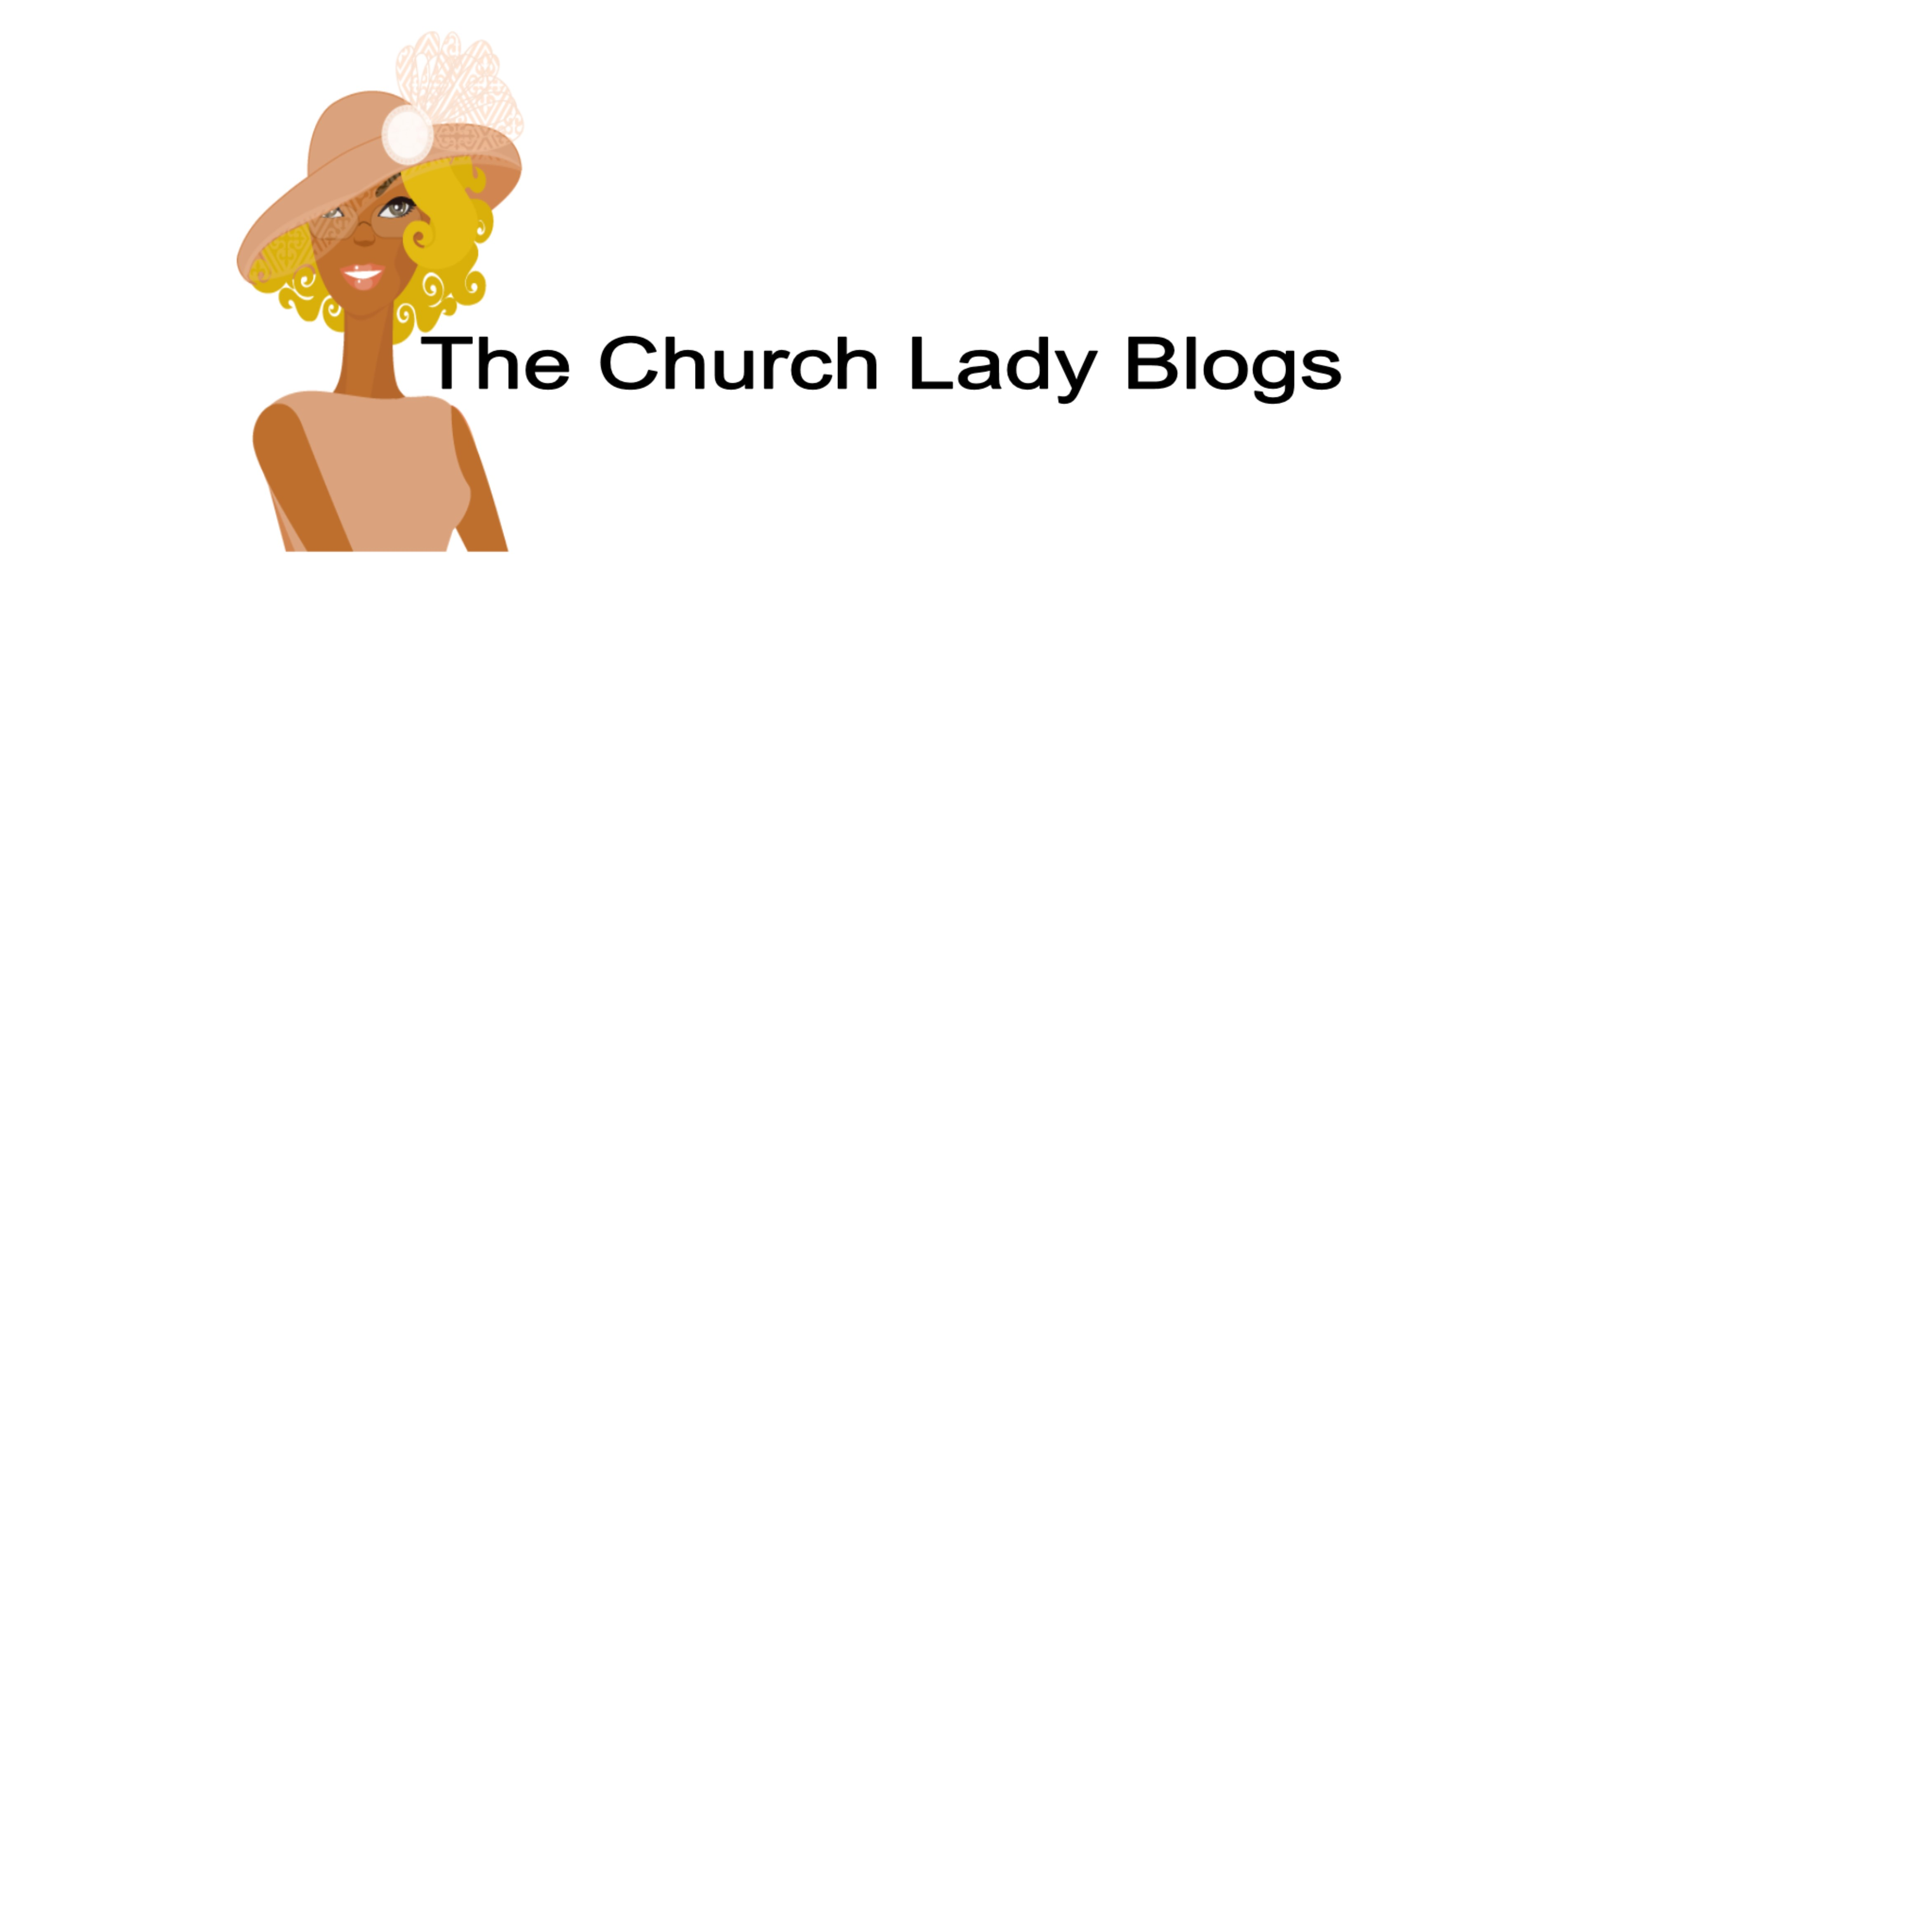 The Church Lady Blogs